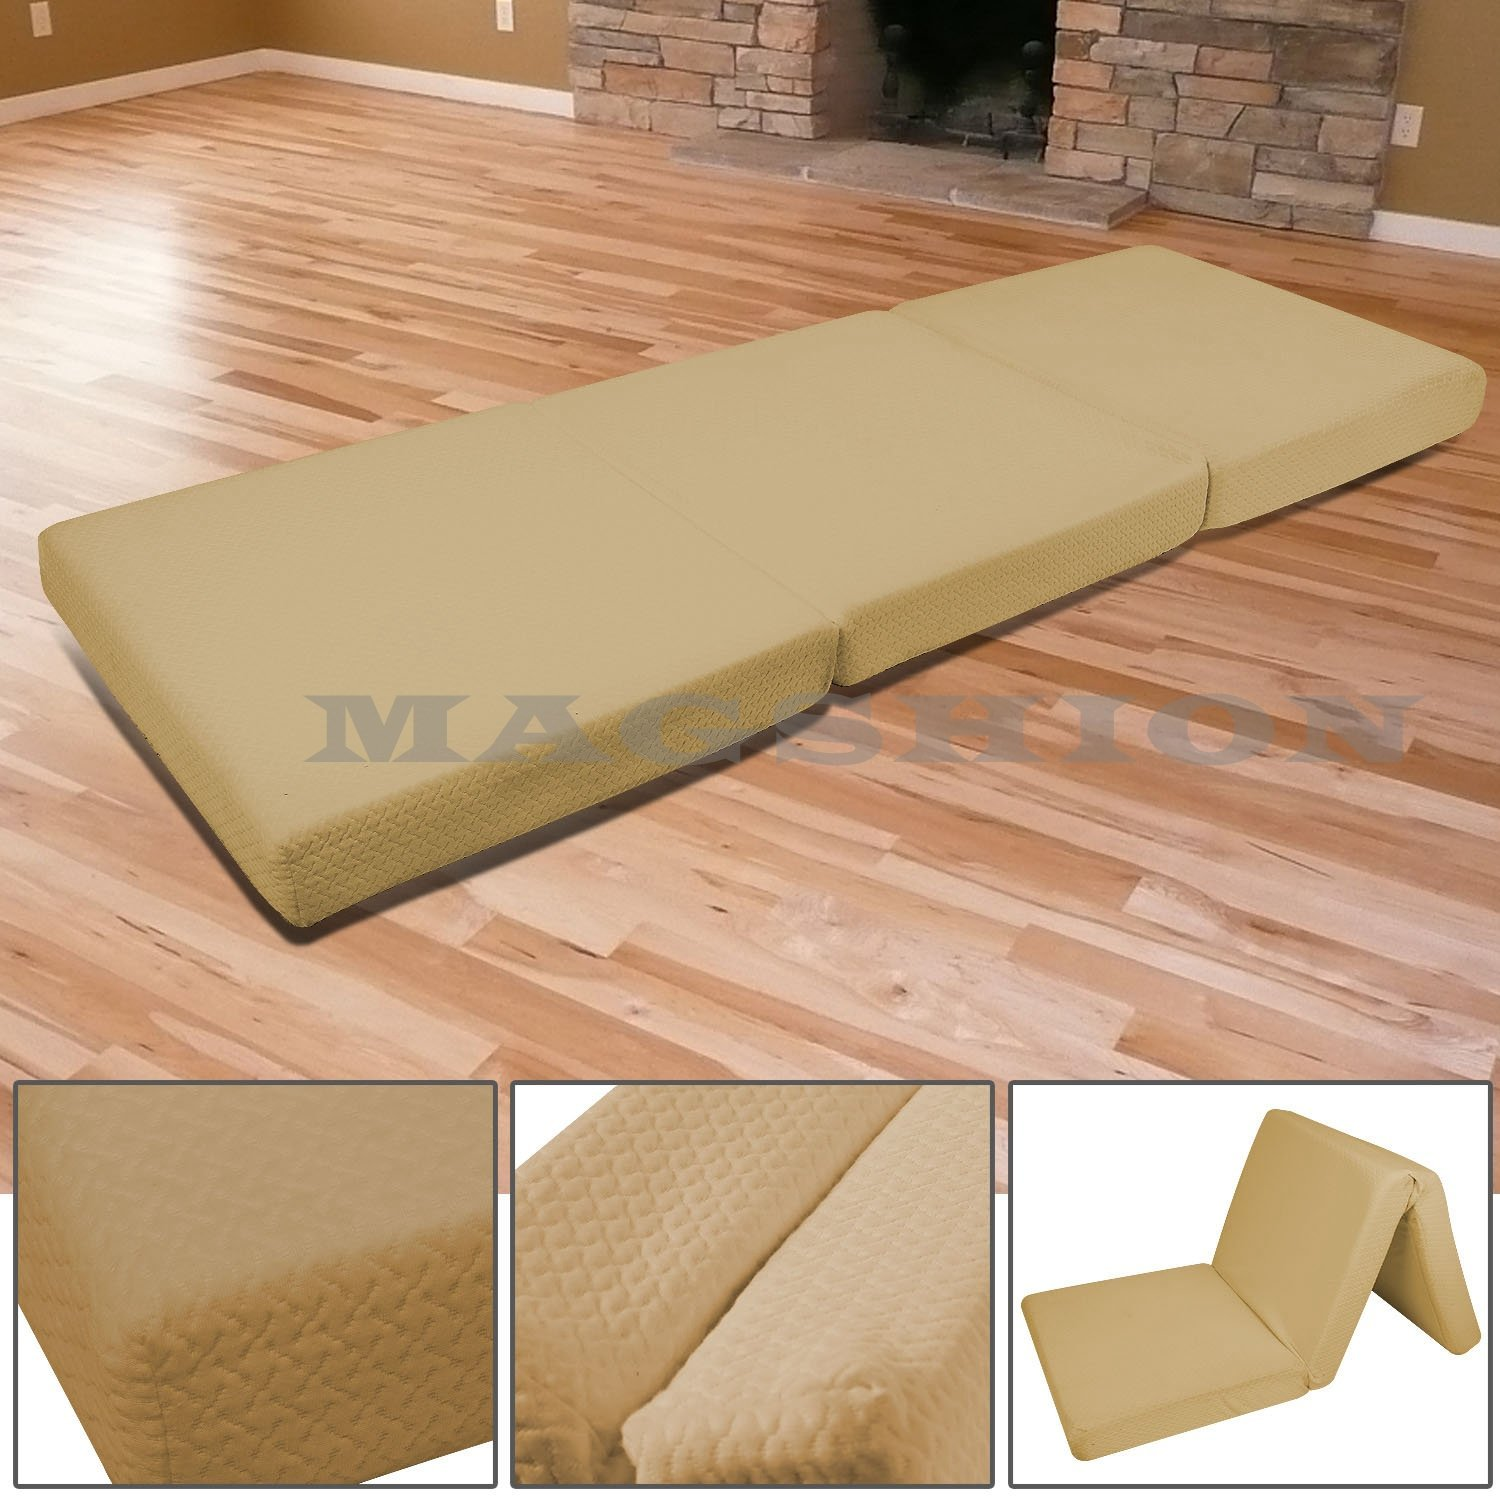 Magshion Memory Foam Mattresses Folding Bed Single 27'', Coffee